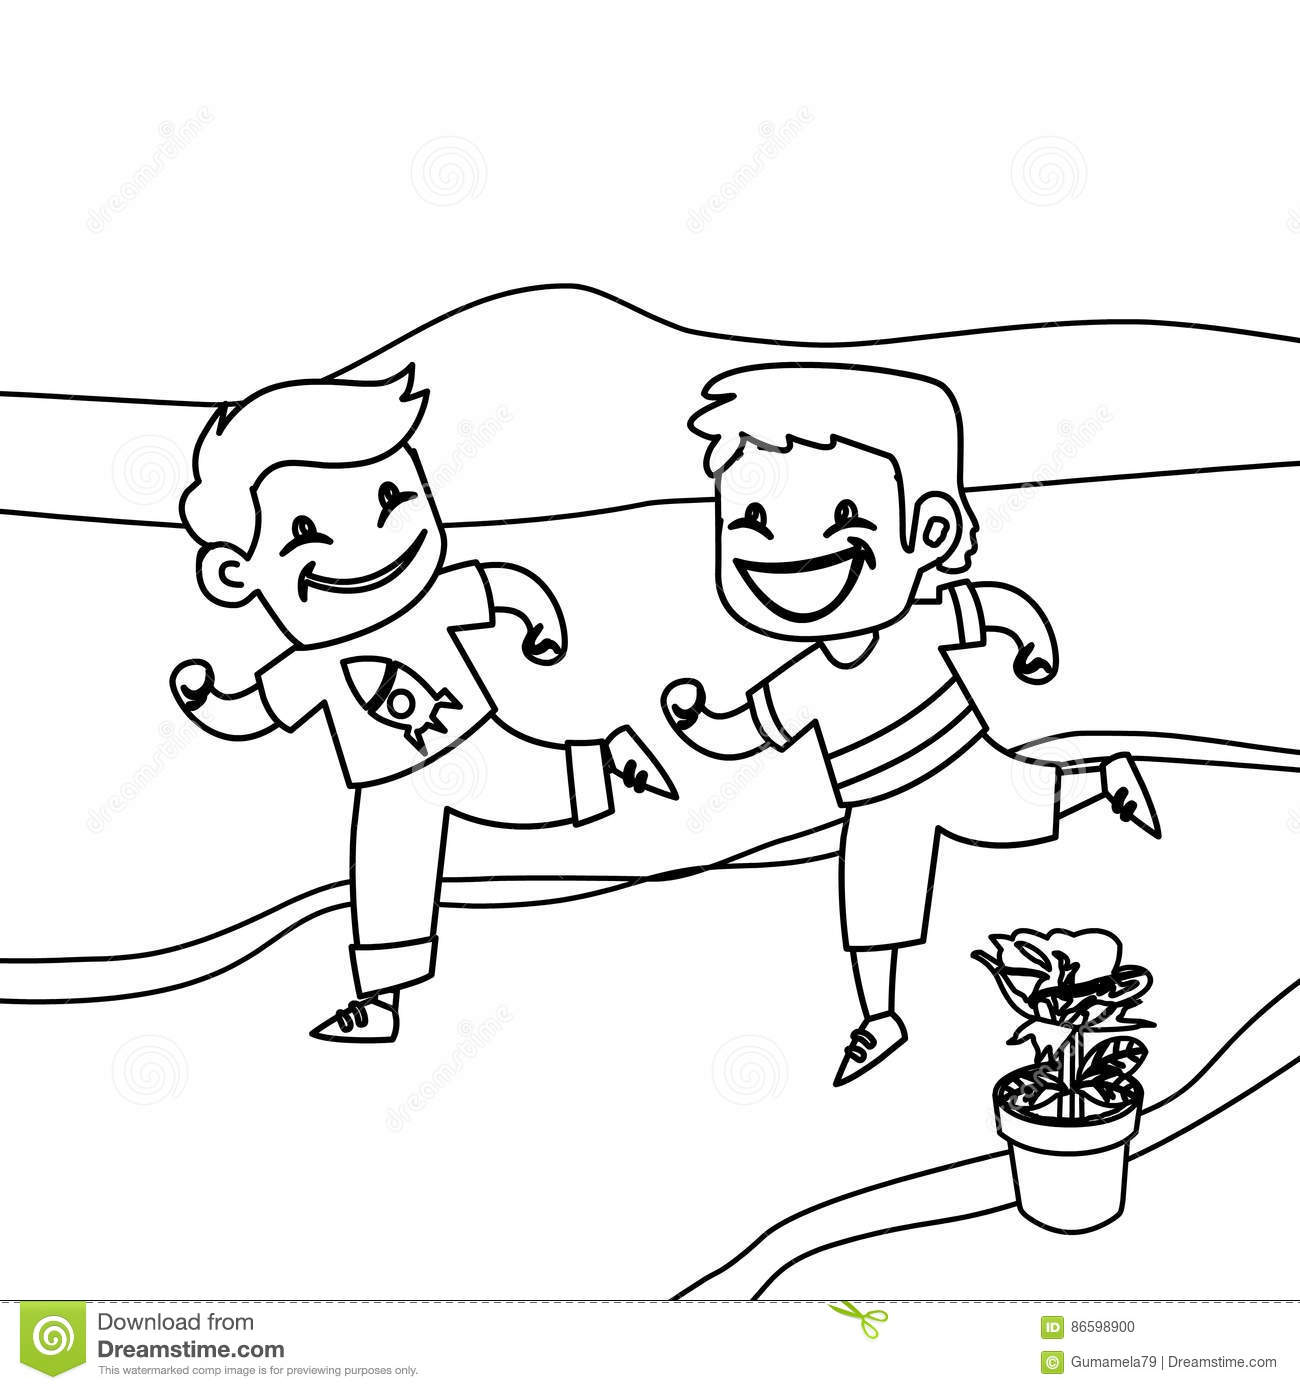 Children Running Coloring Page Stock Illustration - Illustration of ...